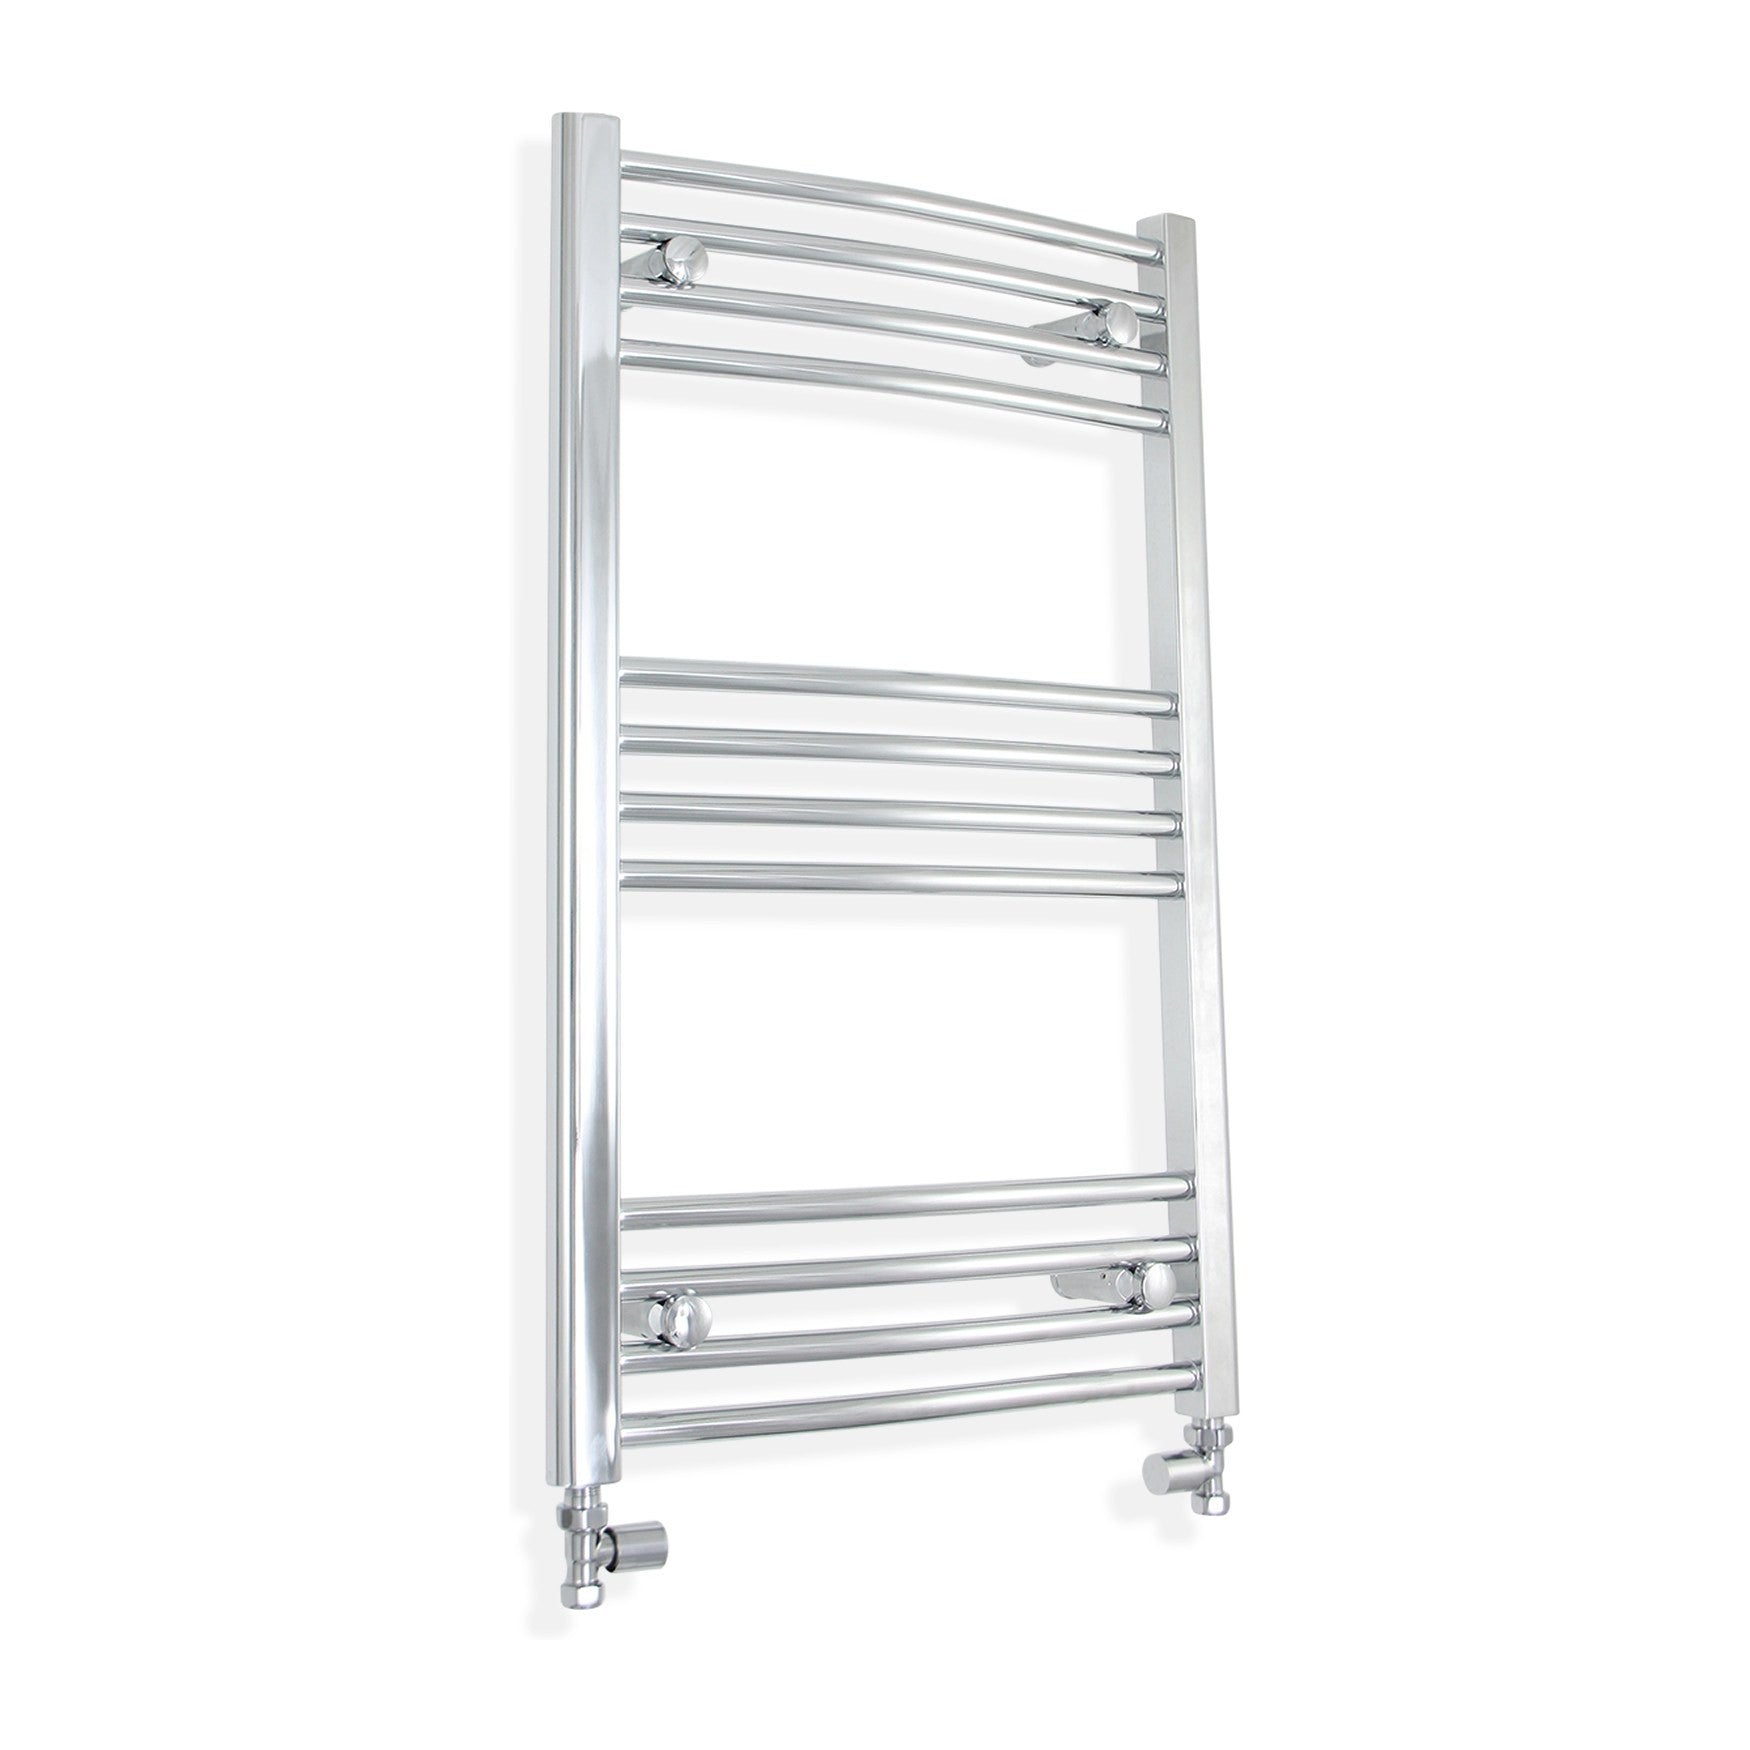 600mm Wide 800mm High Curved Chrome Towel Rail Radiator With Straight Valve